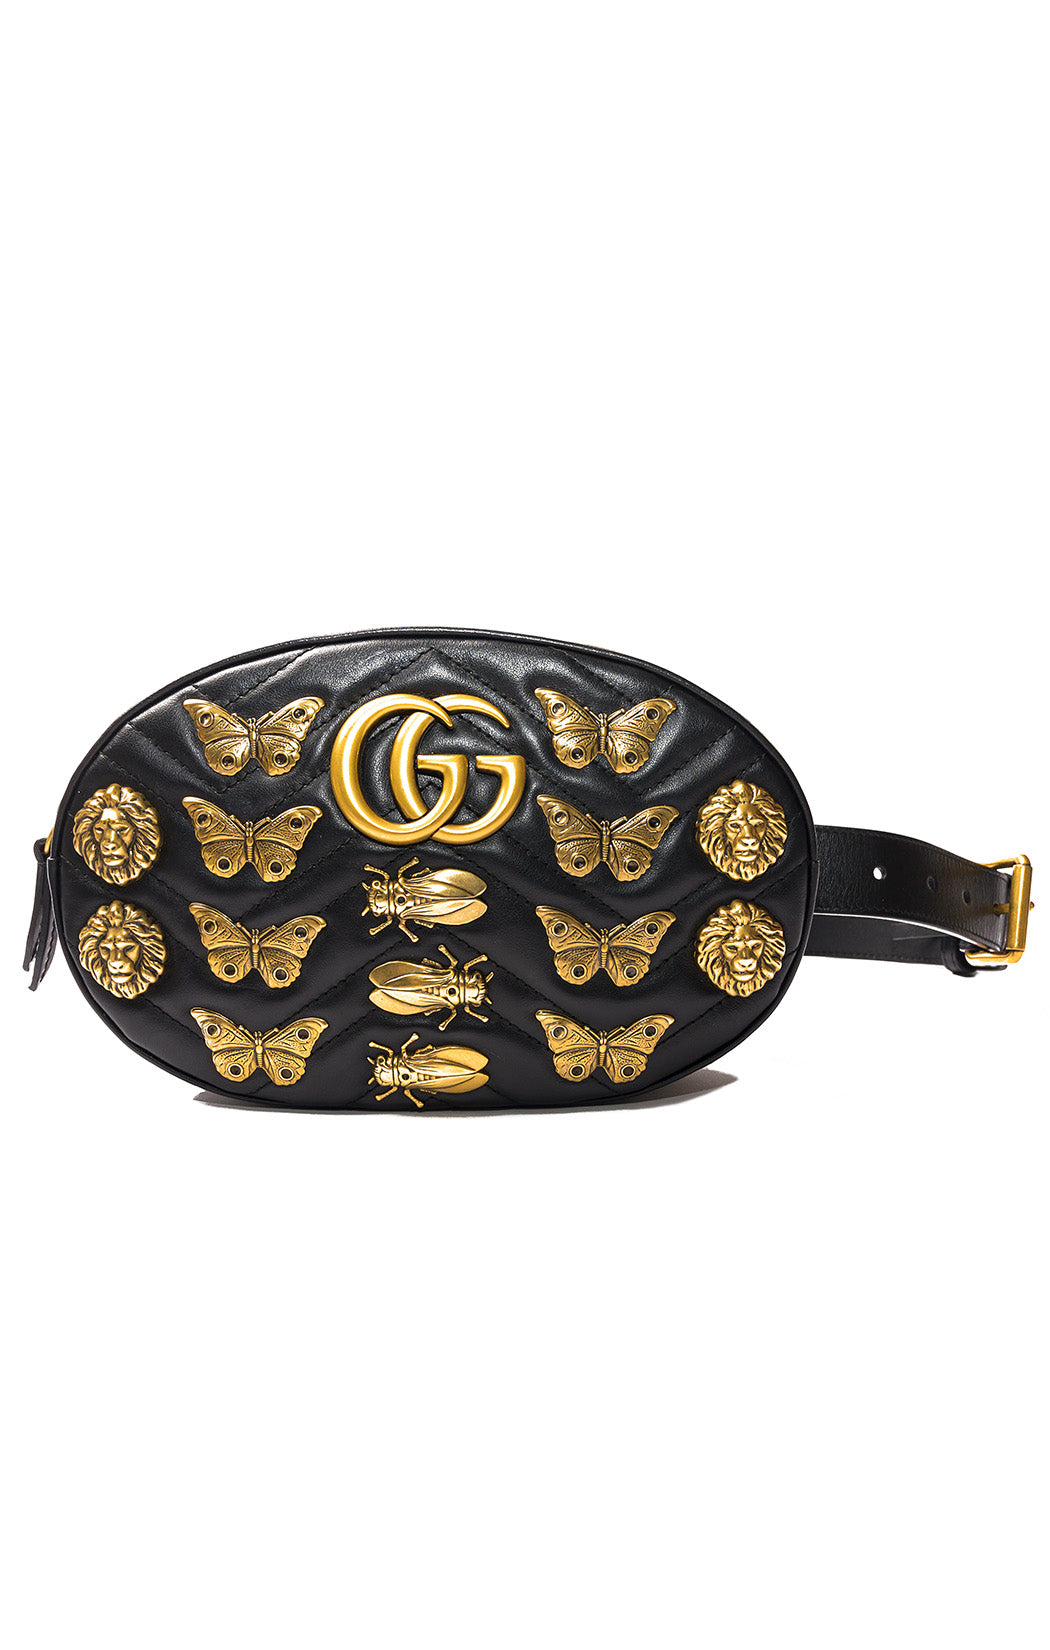 "Front view of GUCCI  Fanny pack / purse Size: 9x W x 6"" H x 2"" D"